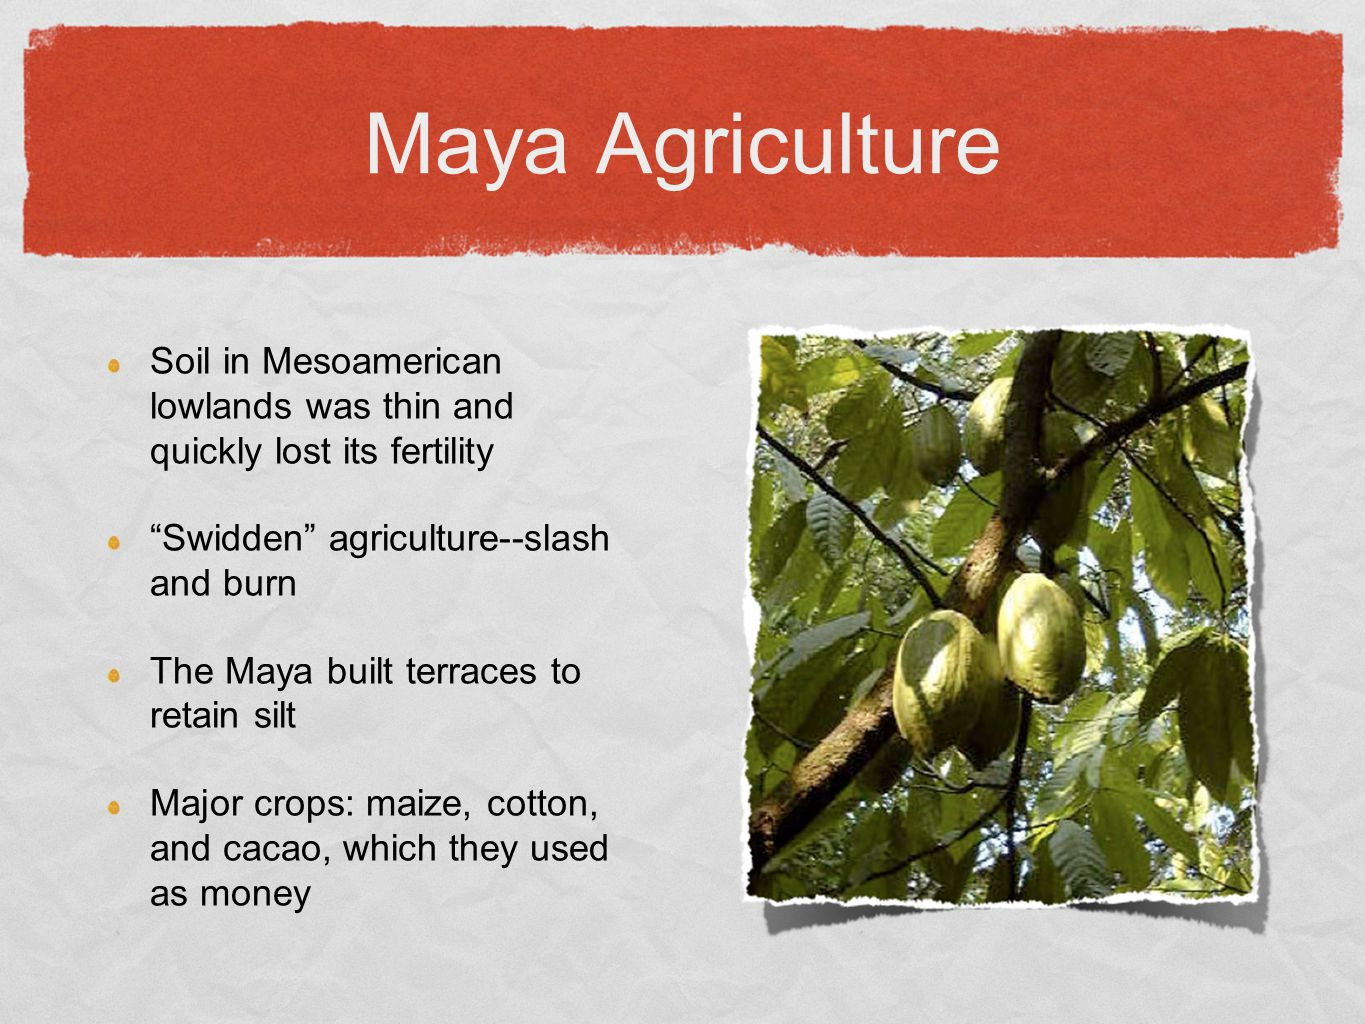 Maya Agriculture Soil in Mesoamerican lowlands was thin and quickly lost its fertility. Swidden agriculture--slash and burn.